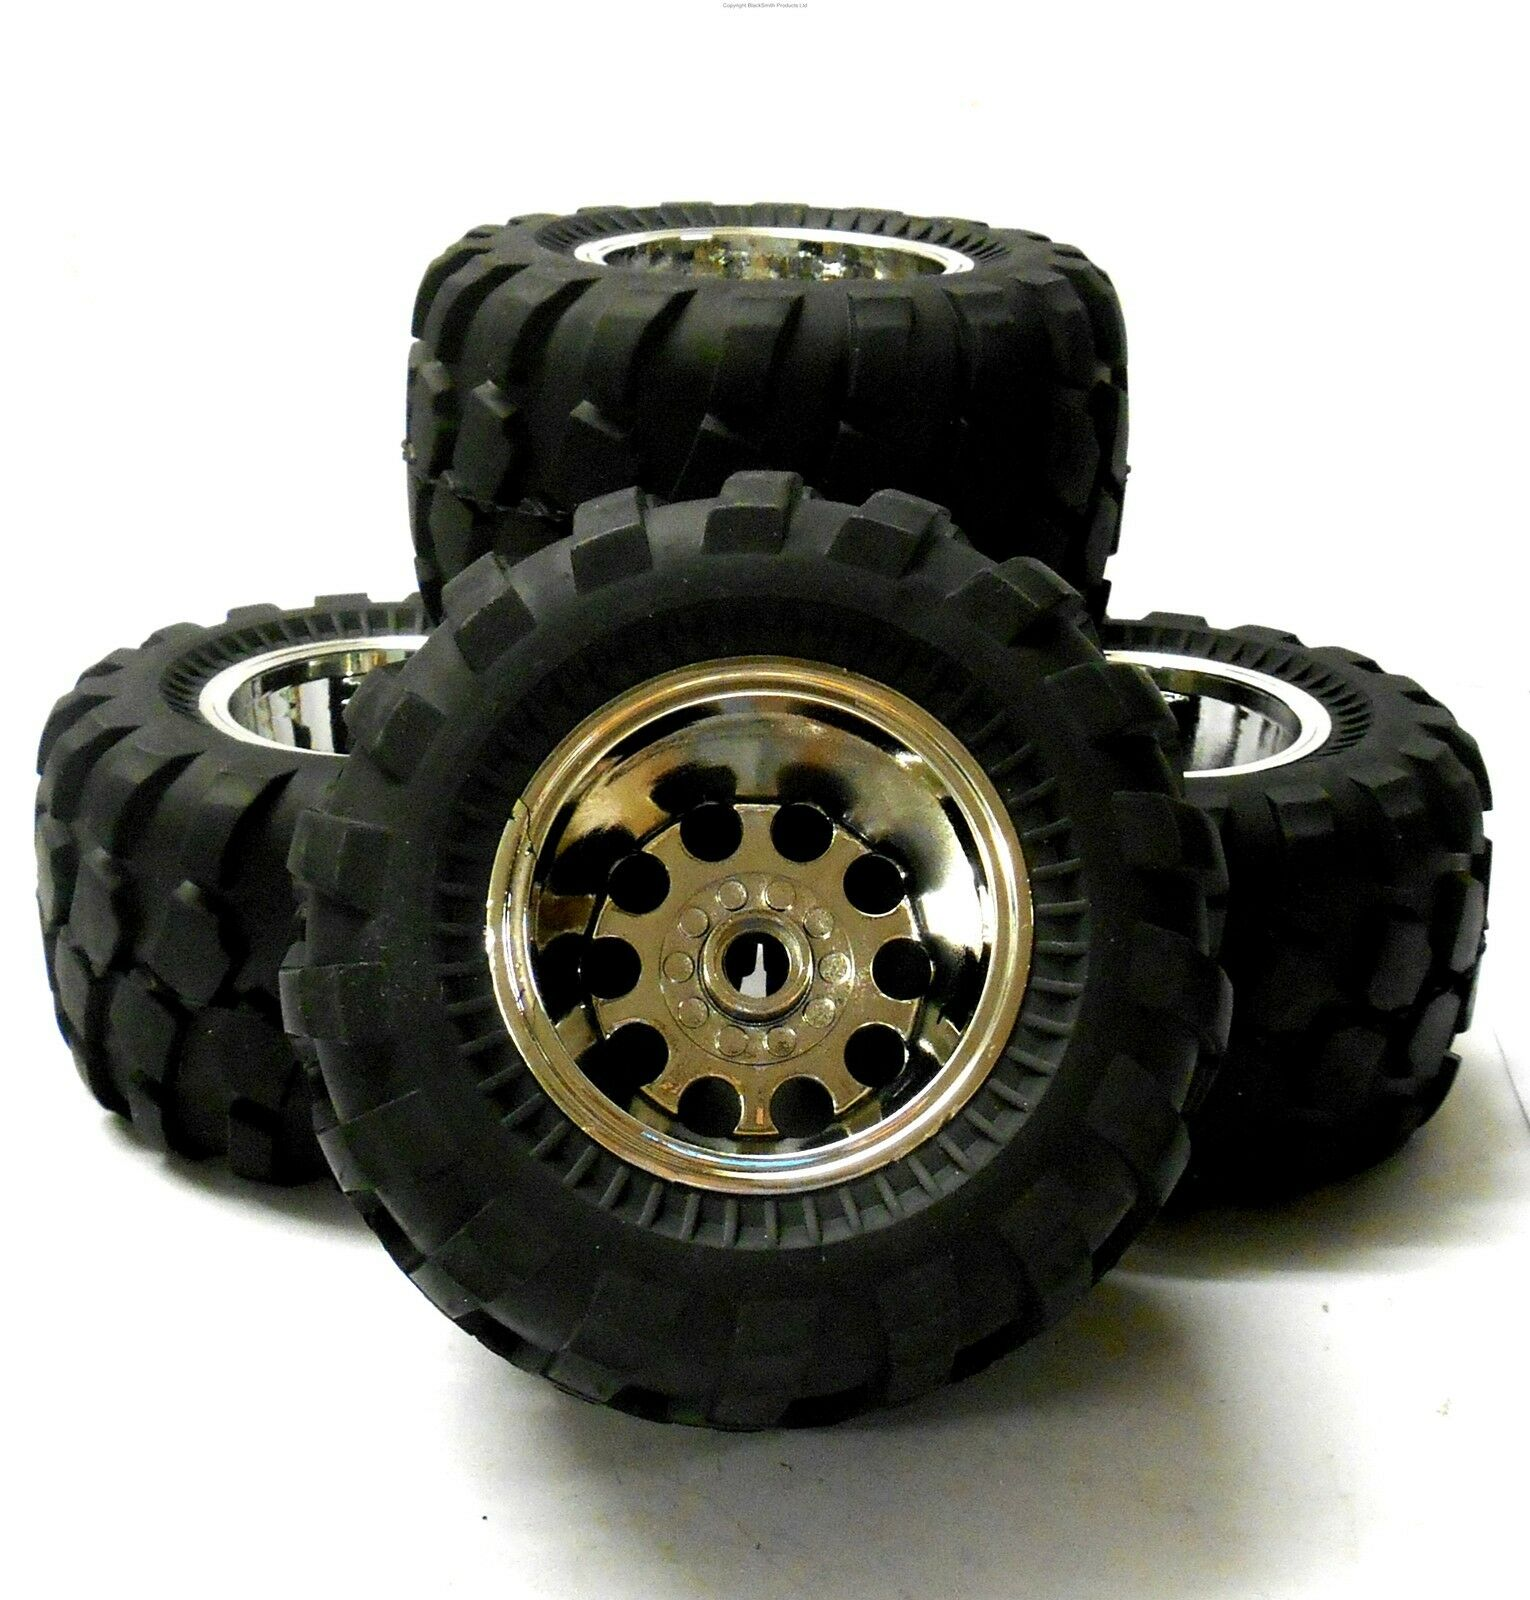 Popular Telepgraph Motoring Expert Honest John Has Offered Advice To One Of His Readers Who Is Keen To Get The Safest And Most Durable  It Only Goes Offroad On The Grass Of A Caravan Site I Seem To Recall You Recommending Michelin Tyres For